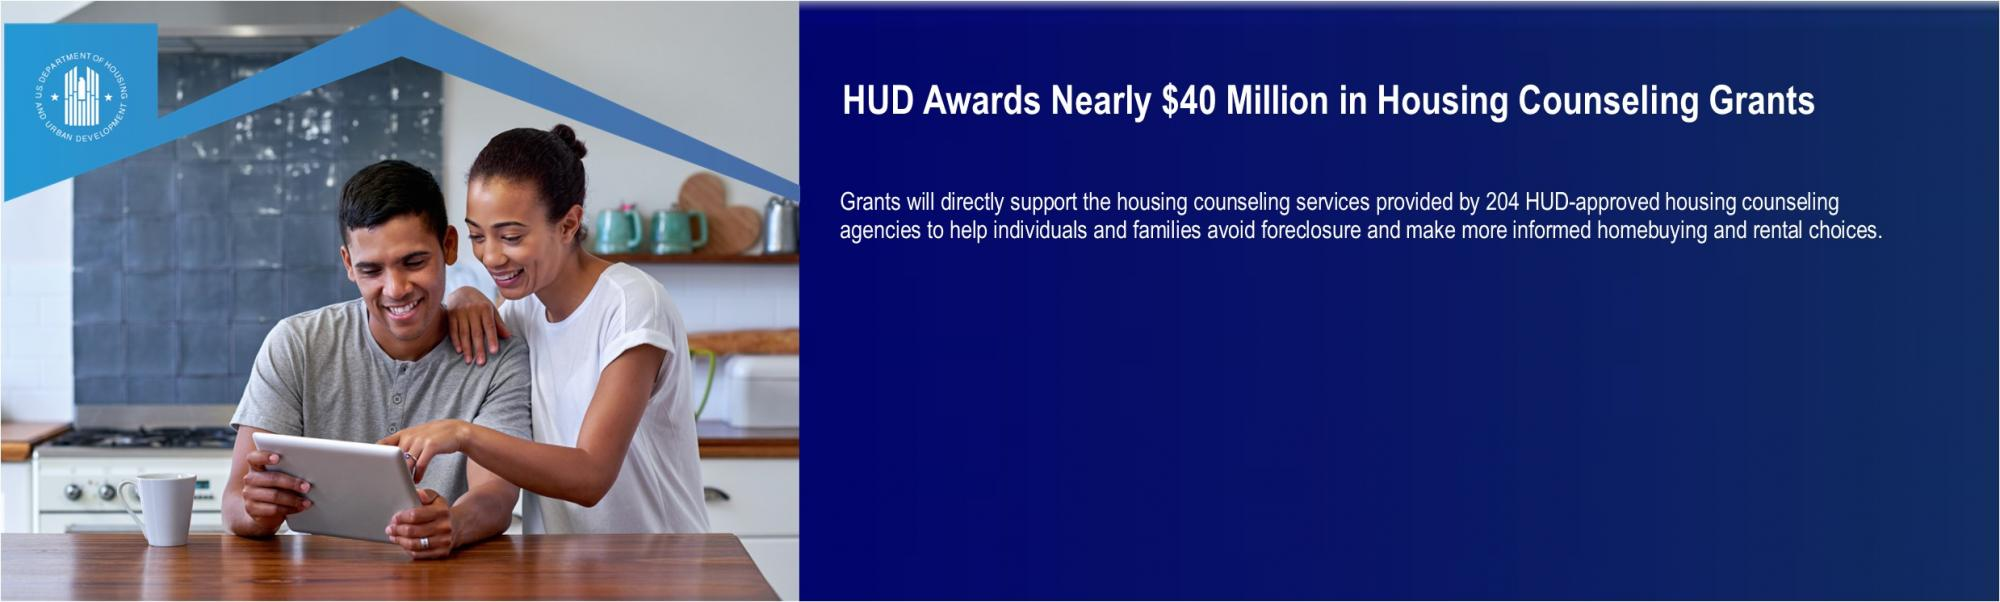 [HUD Awards Nearly $40 Million in Housing Counseling Grants].